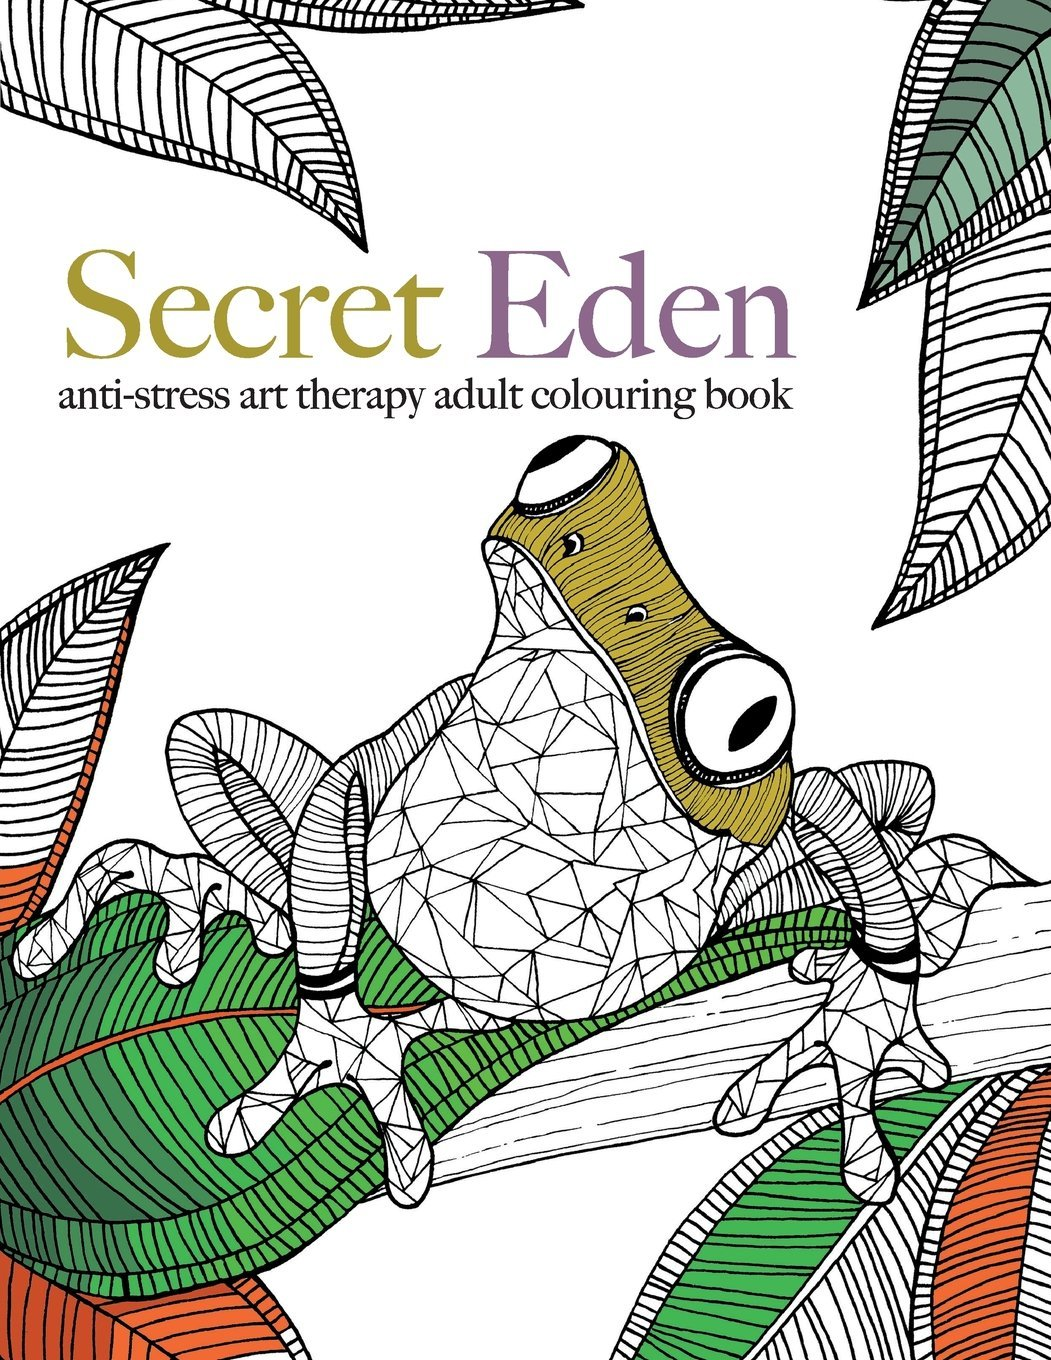 Secret Eden Anti Stress Art Therapy Colouring Book Christina Rose 9781910771365 Books